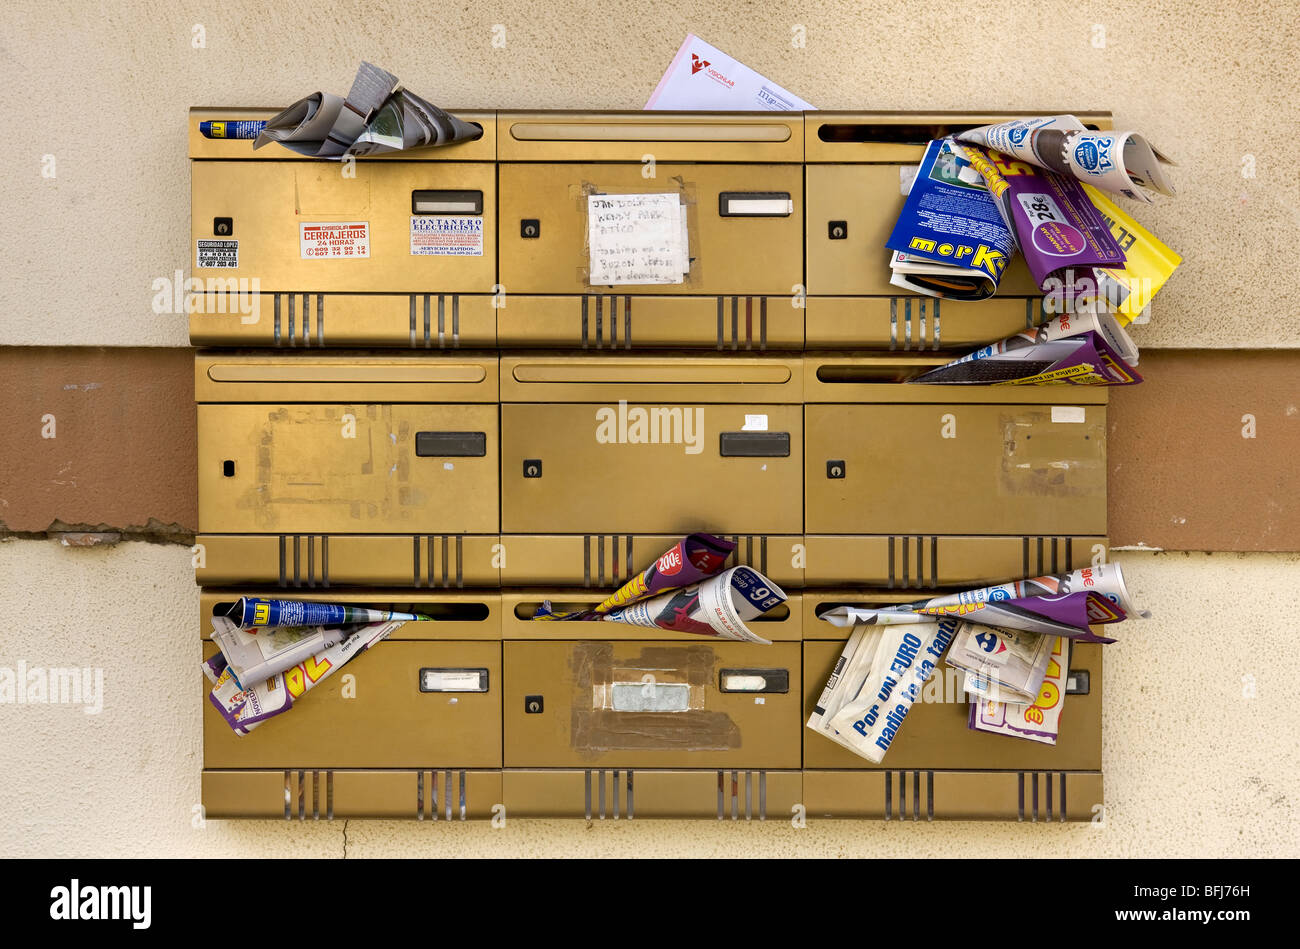 Mailboxes, Spain. - Stock Image